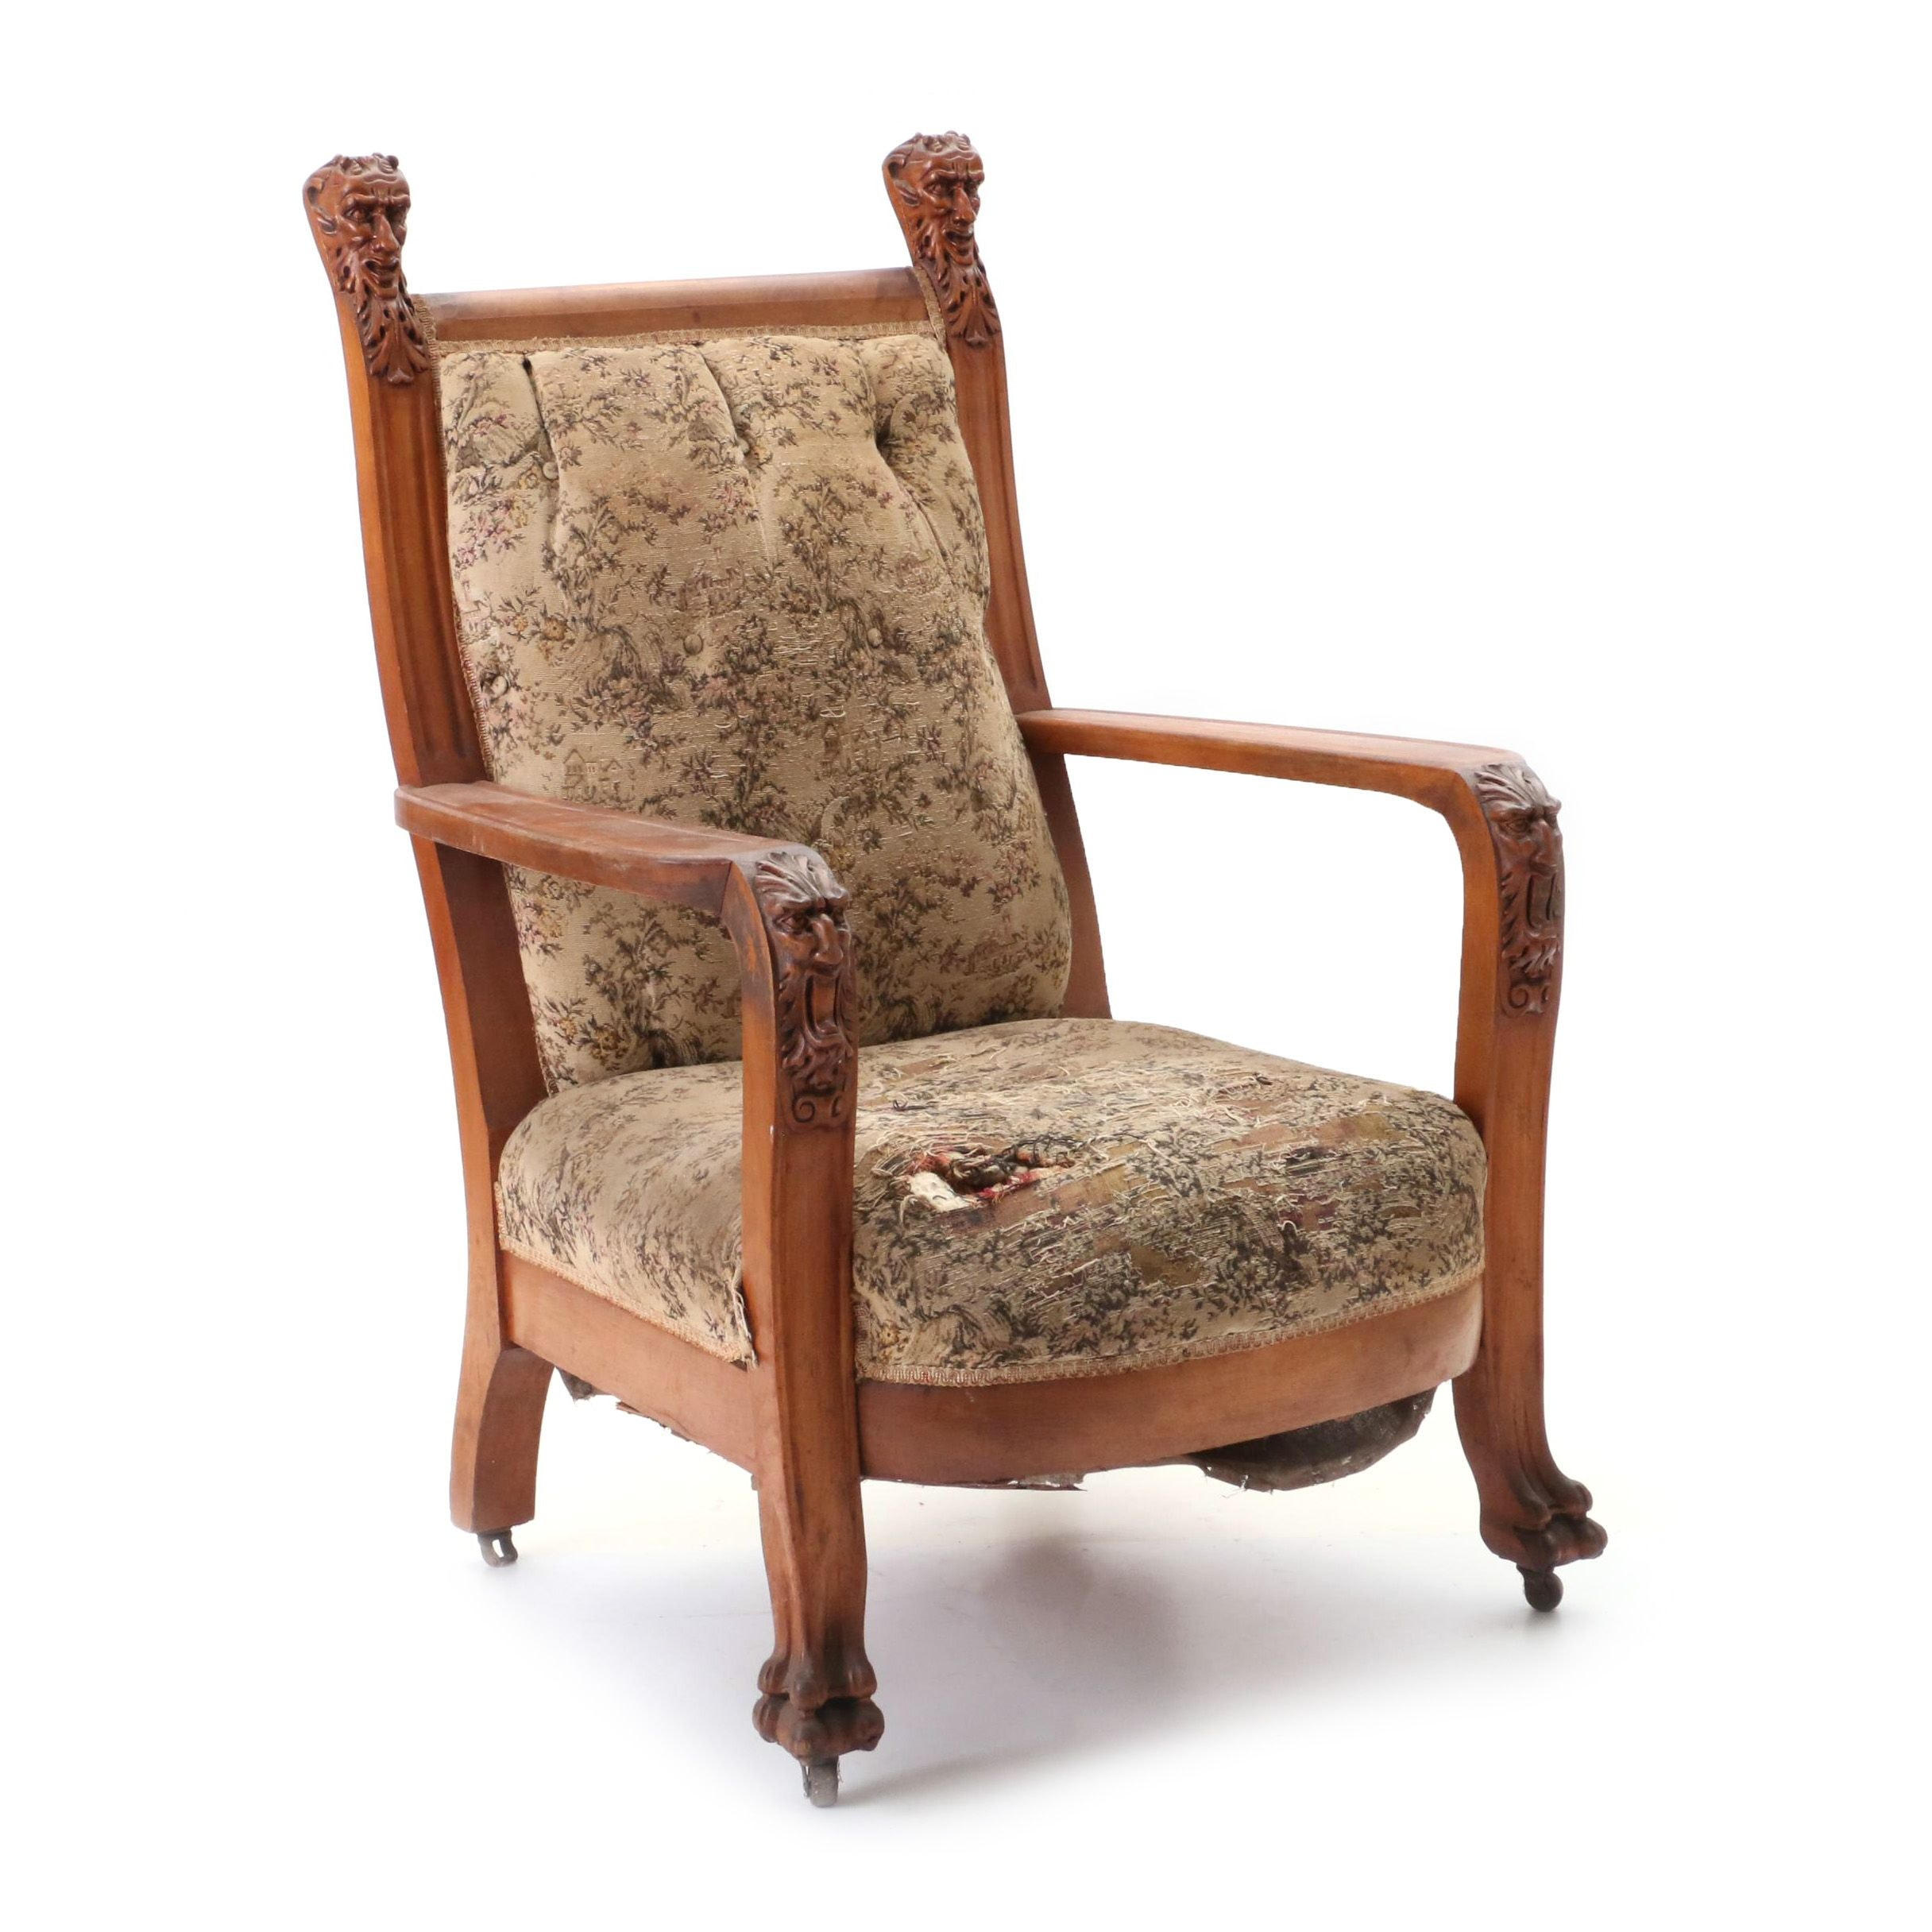 Victorian Carved Birch Arm Chair, Turn of 20th Century